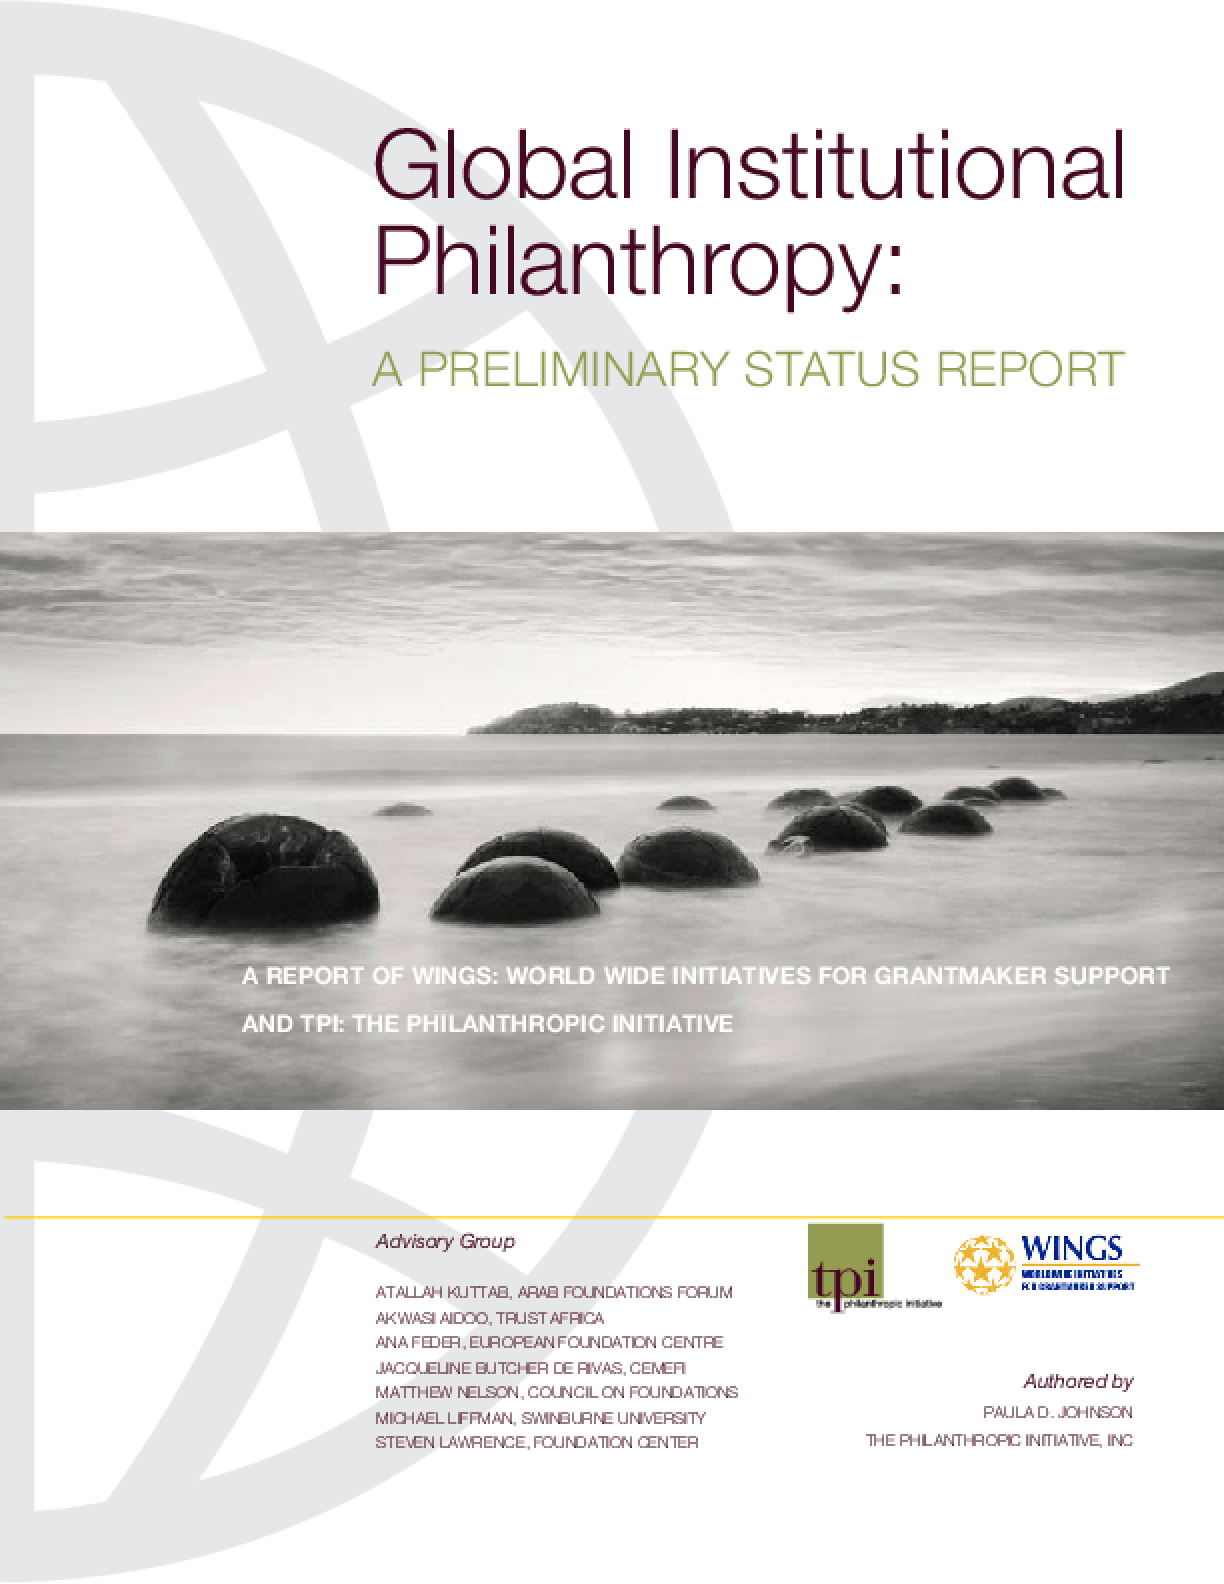 Global Institutional Philanthropy: A Preliminary Report